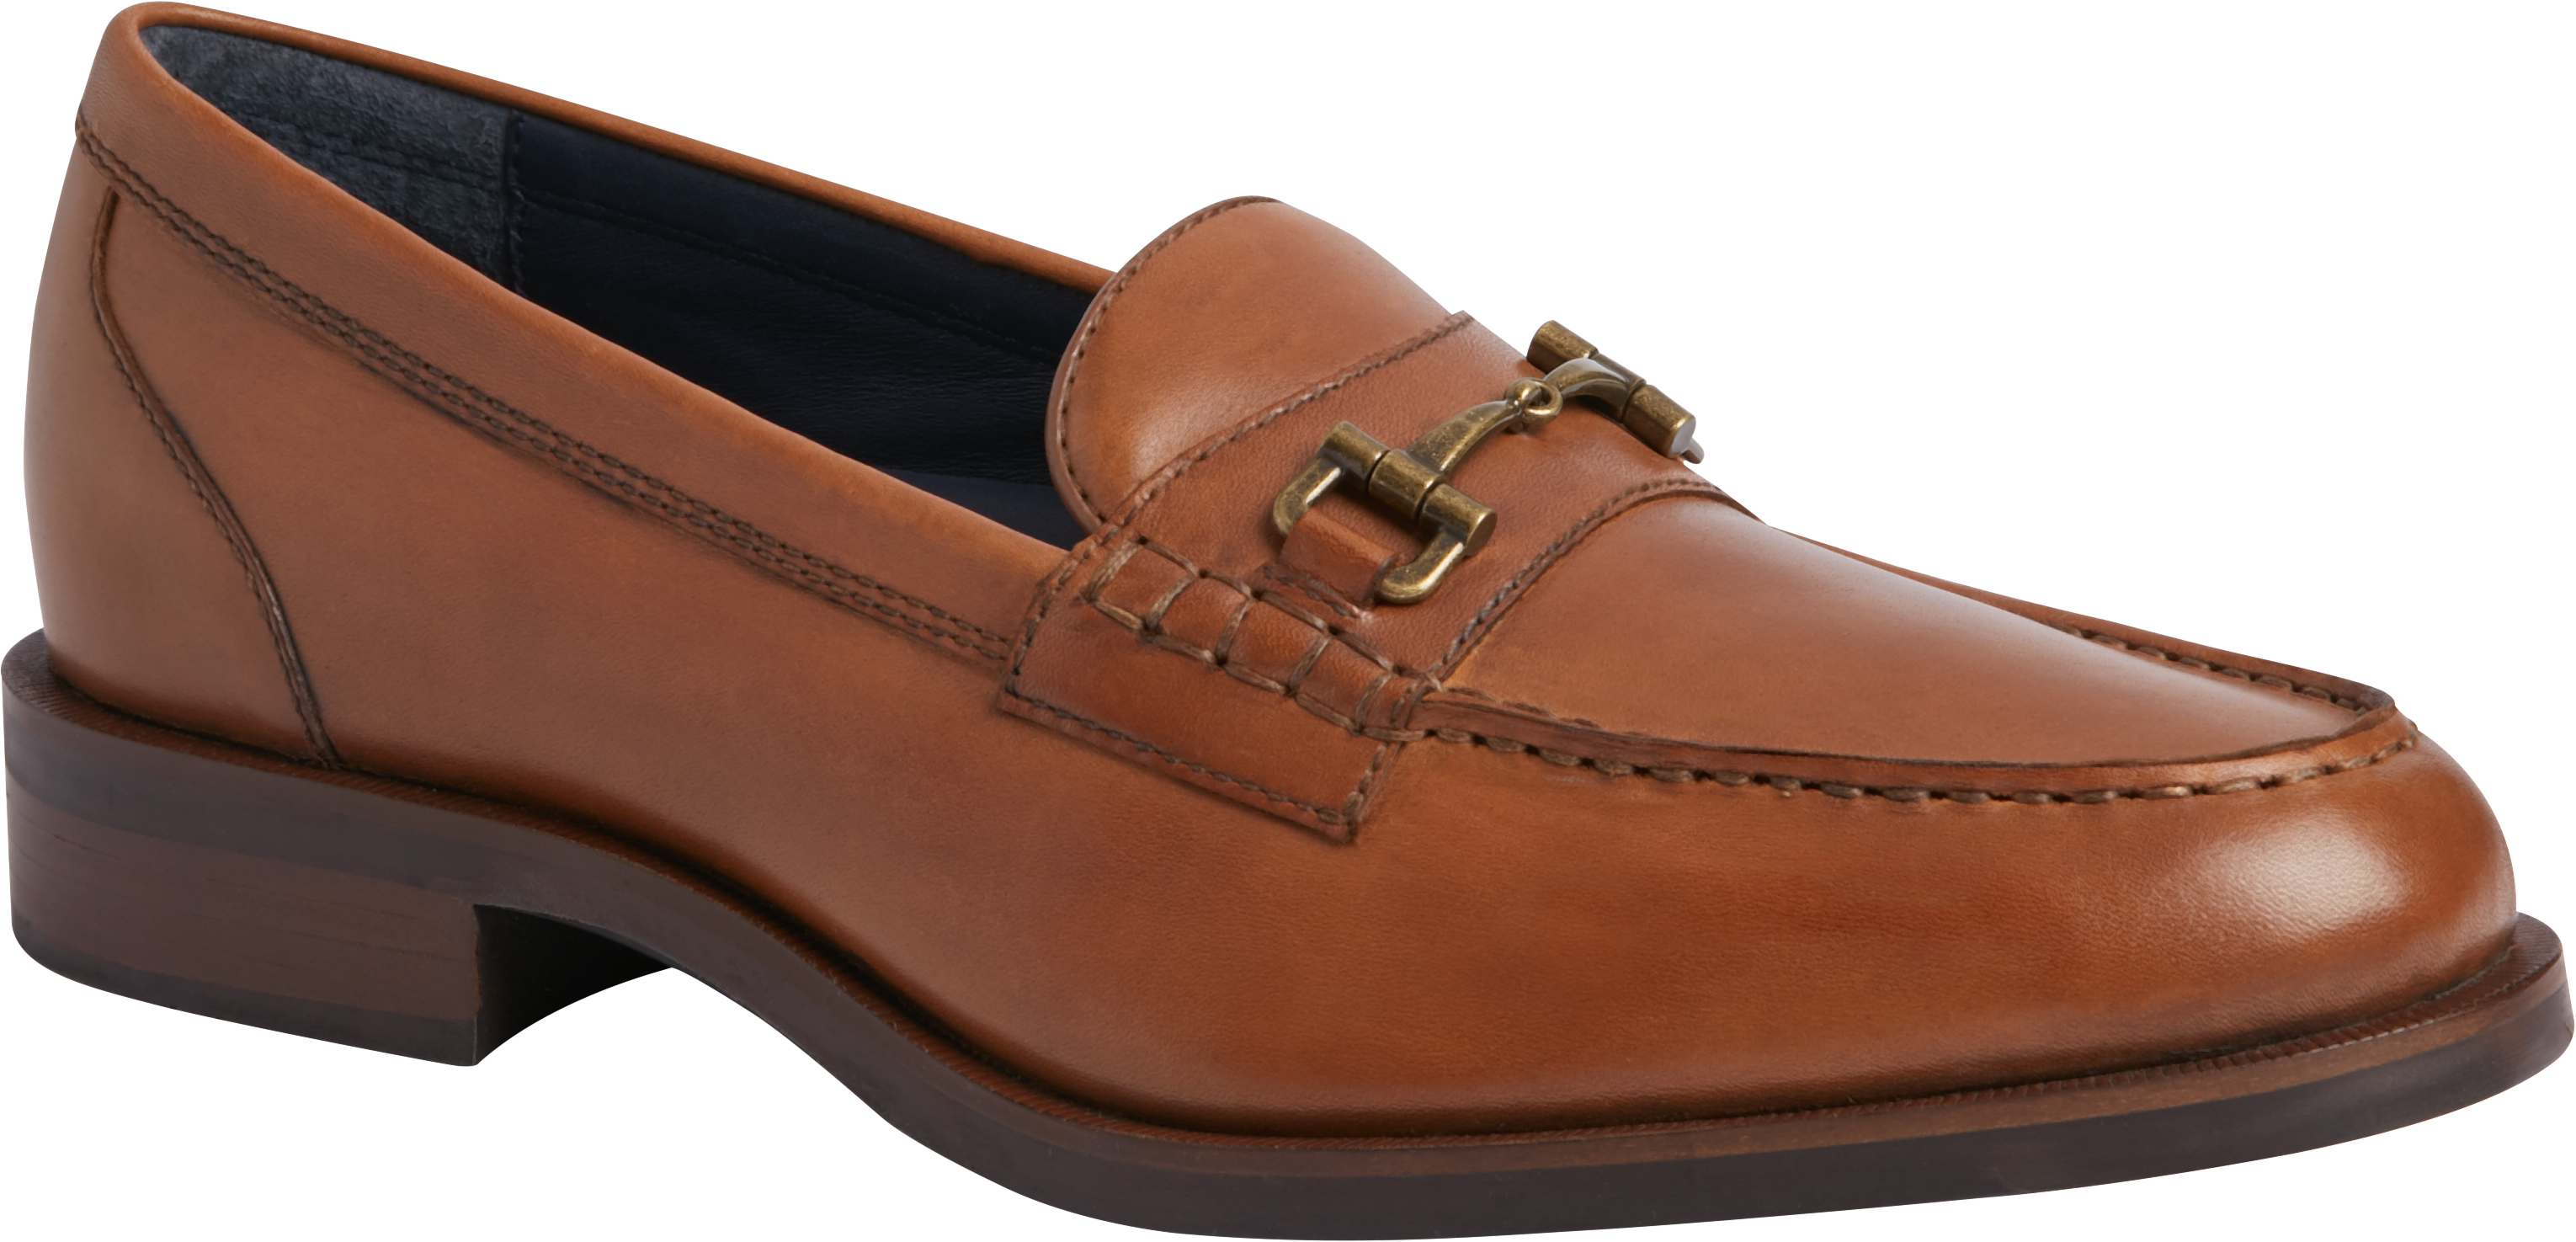 feeee74edf6 Cole Haan Pinch Sanford Bit Loafers - Cole Haan